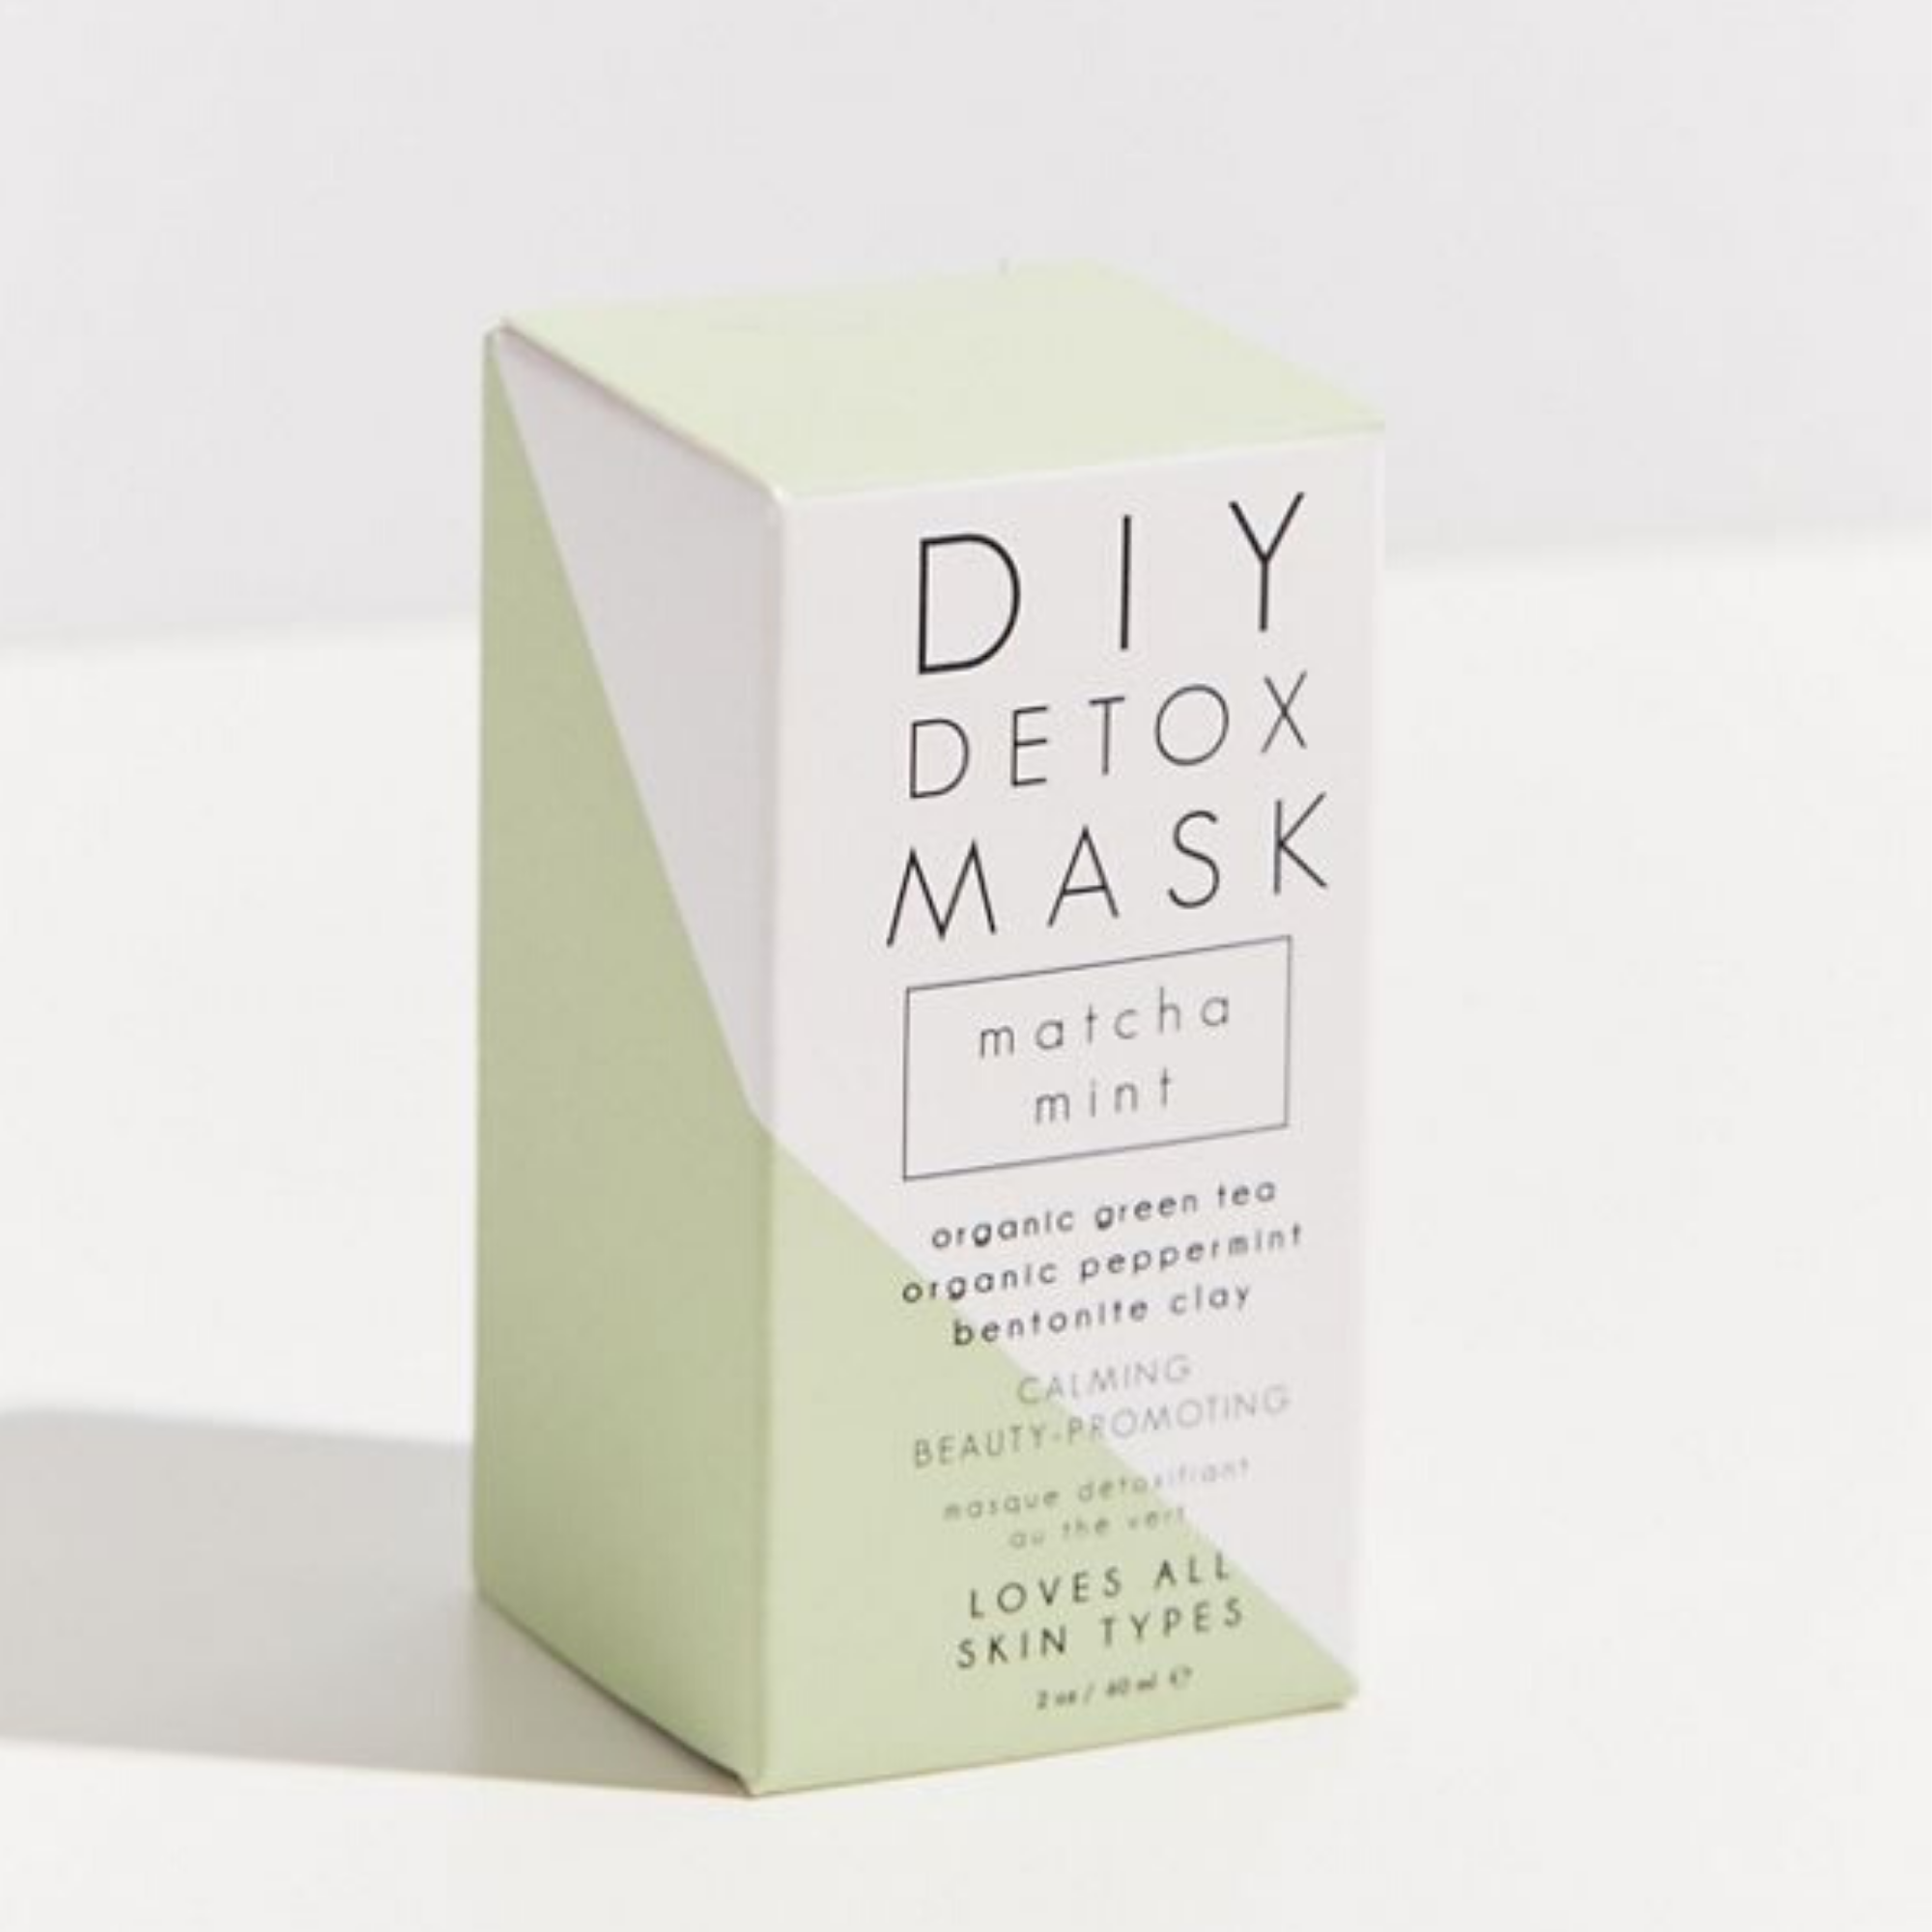 Matcha Mint DIY Detox Mask